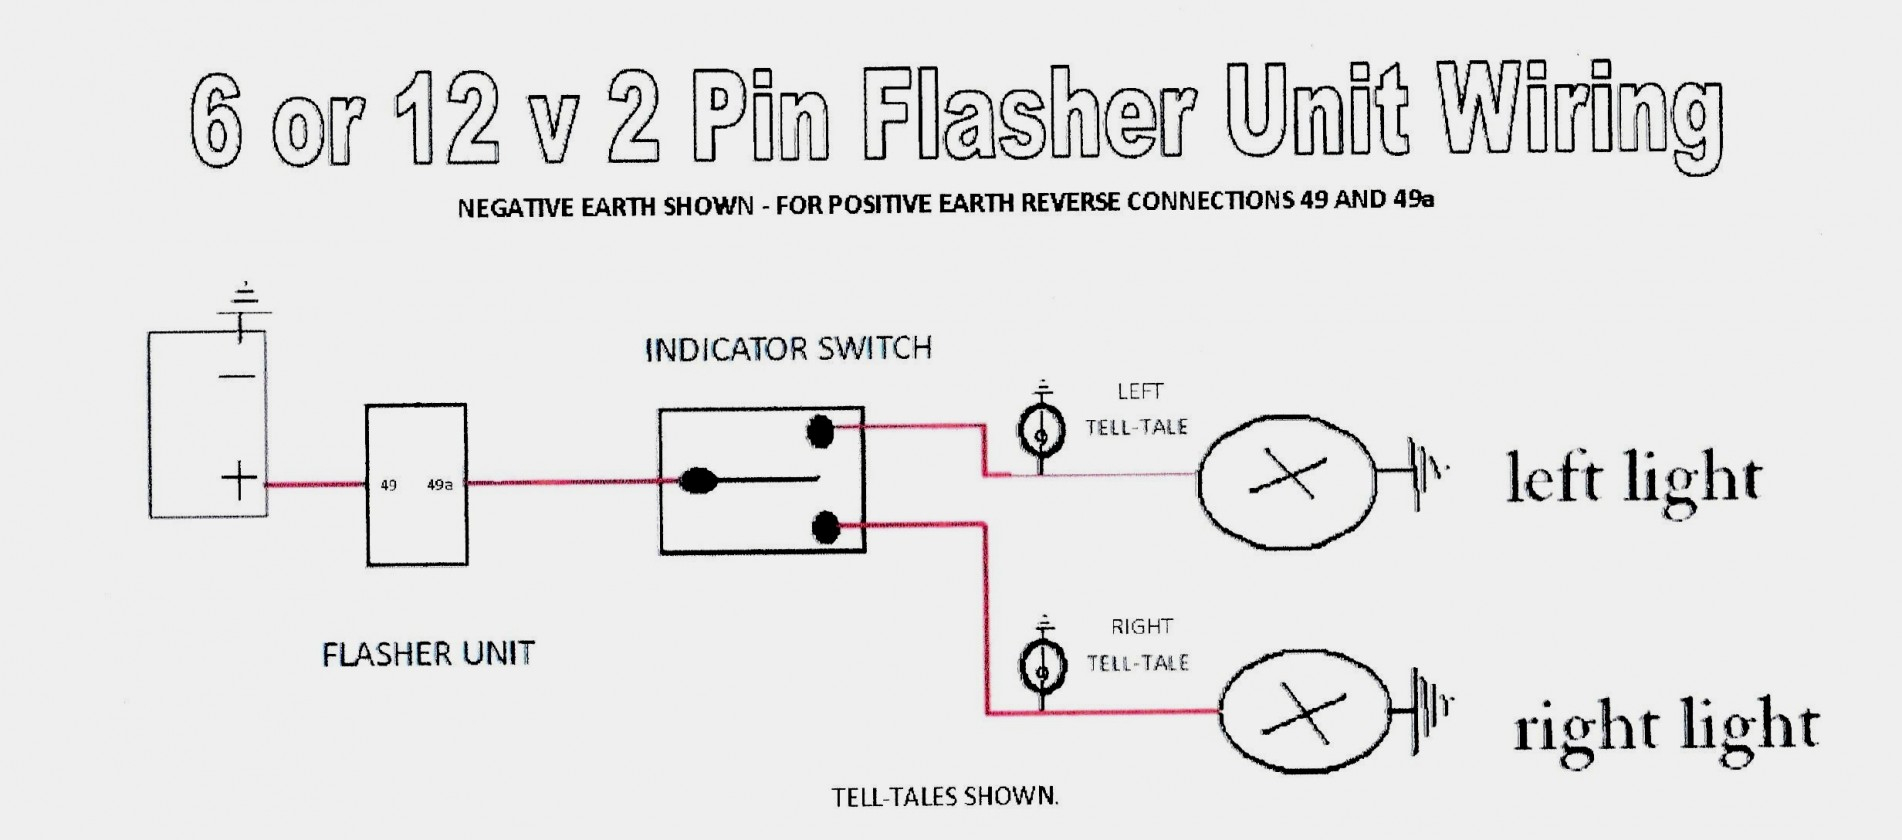 Universal Turn Signal Flasher Wiring Diagram - Trusted Wiring - Universal Turn Signal Wiring Diagram